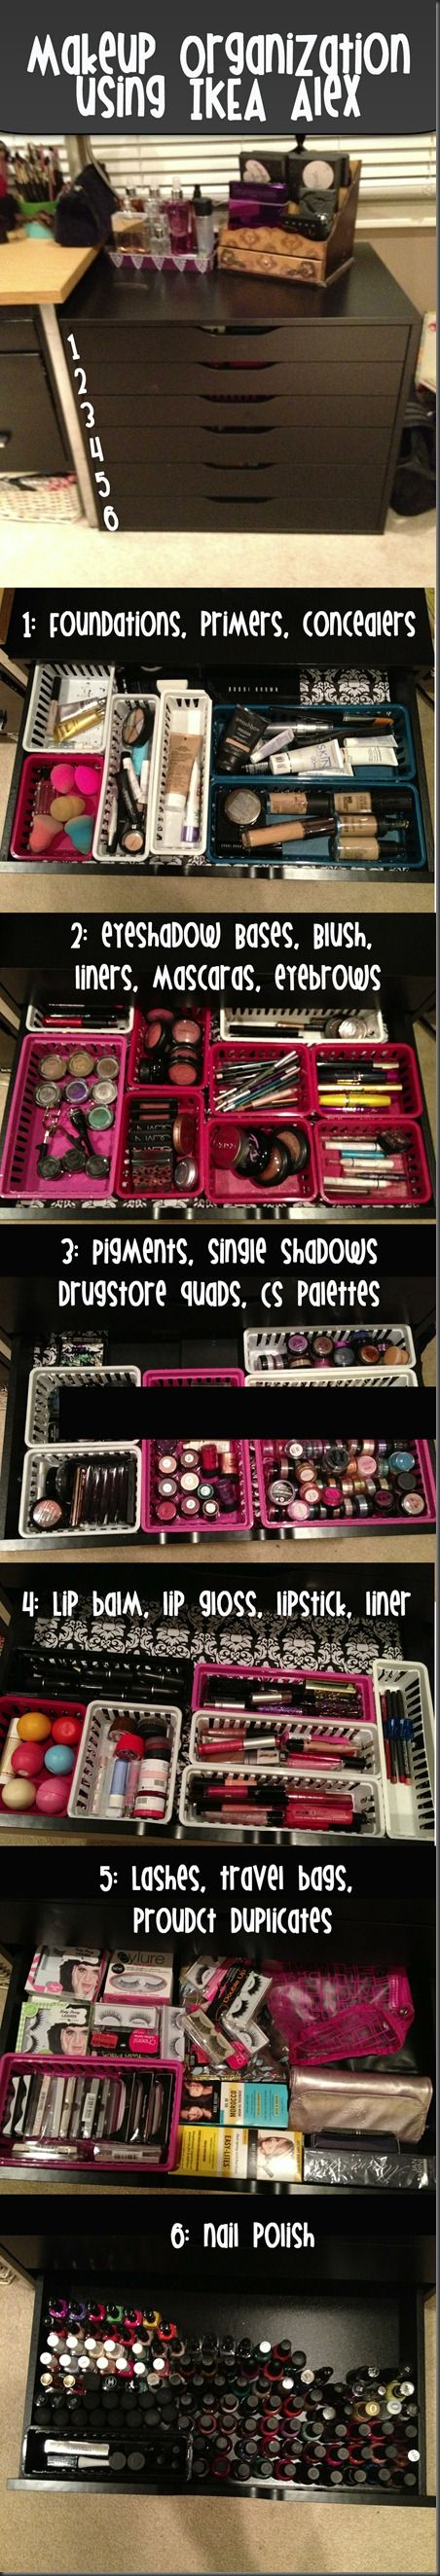 Make up organization:I just died-I don't even have enough makeup for the the 1st draw...I'm like a kid wanting to play in this chicks makeup cabinet!!!